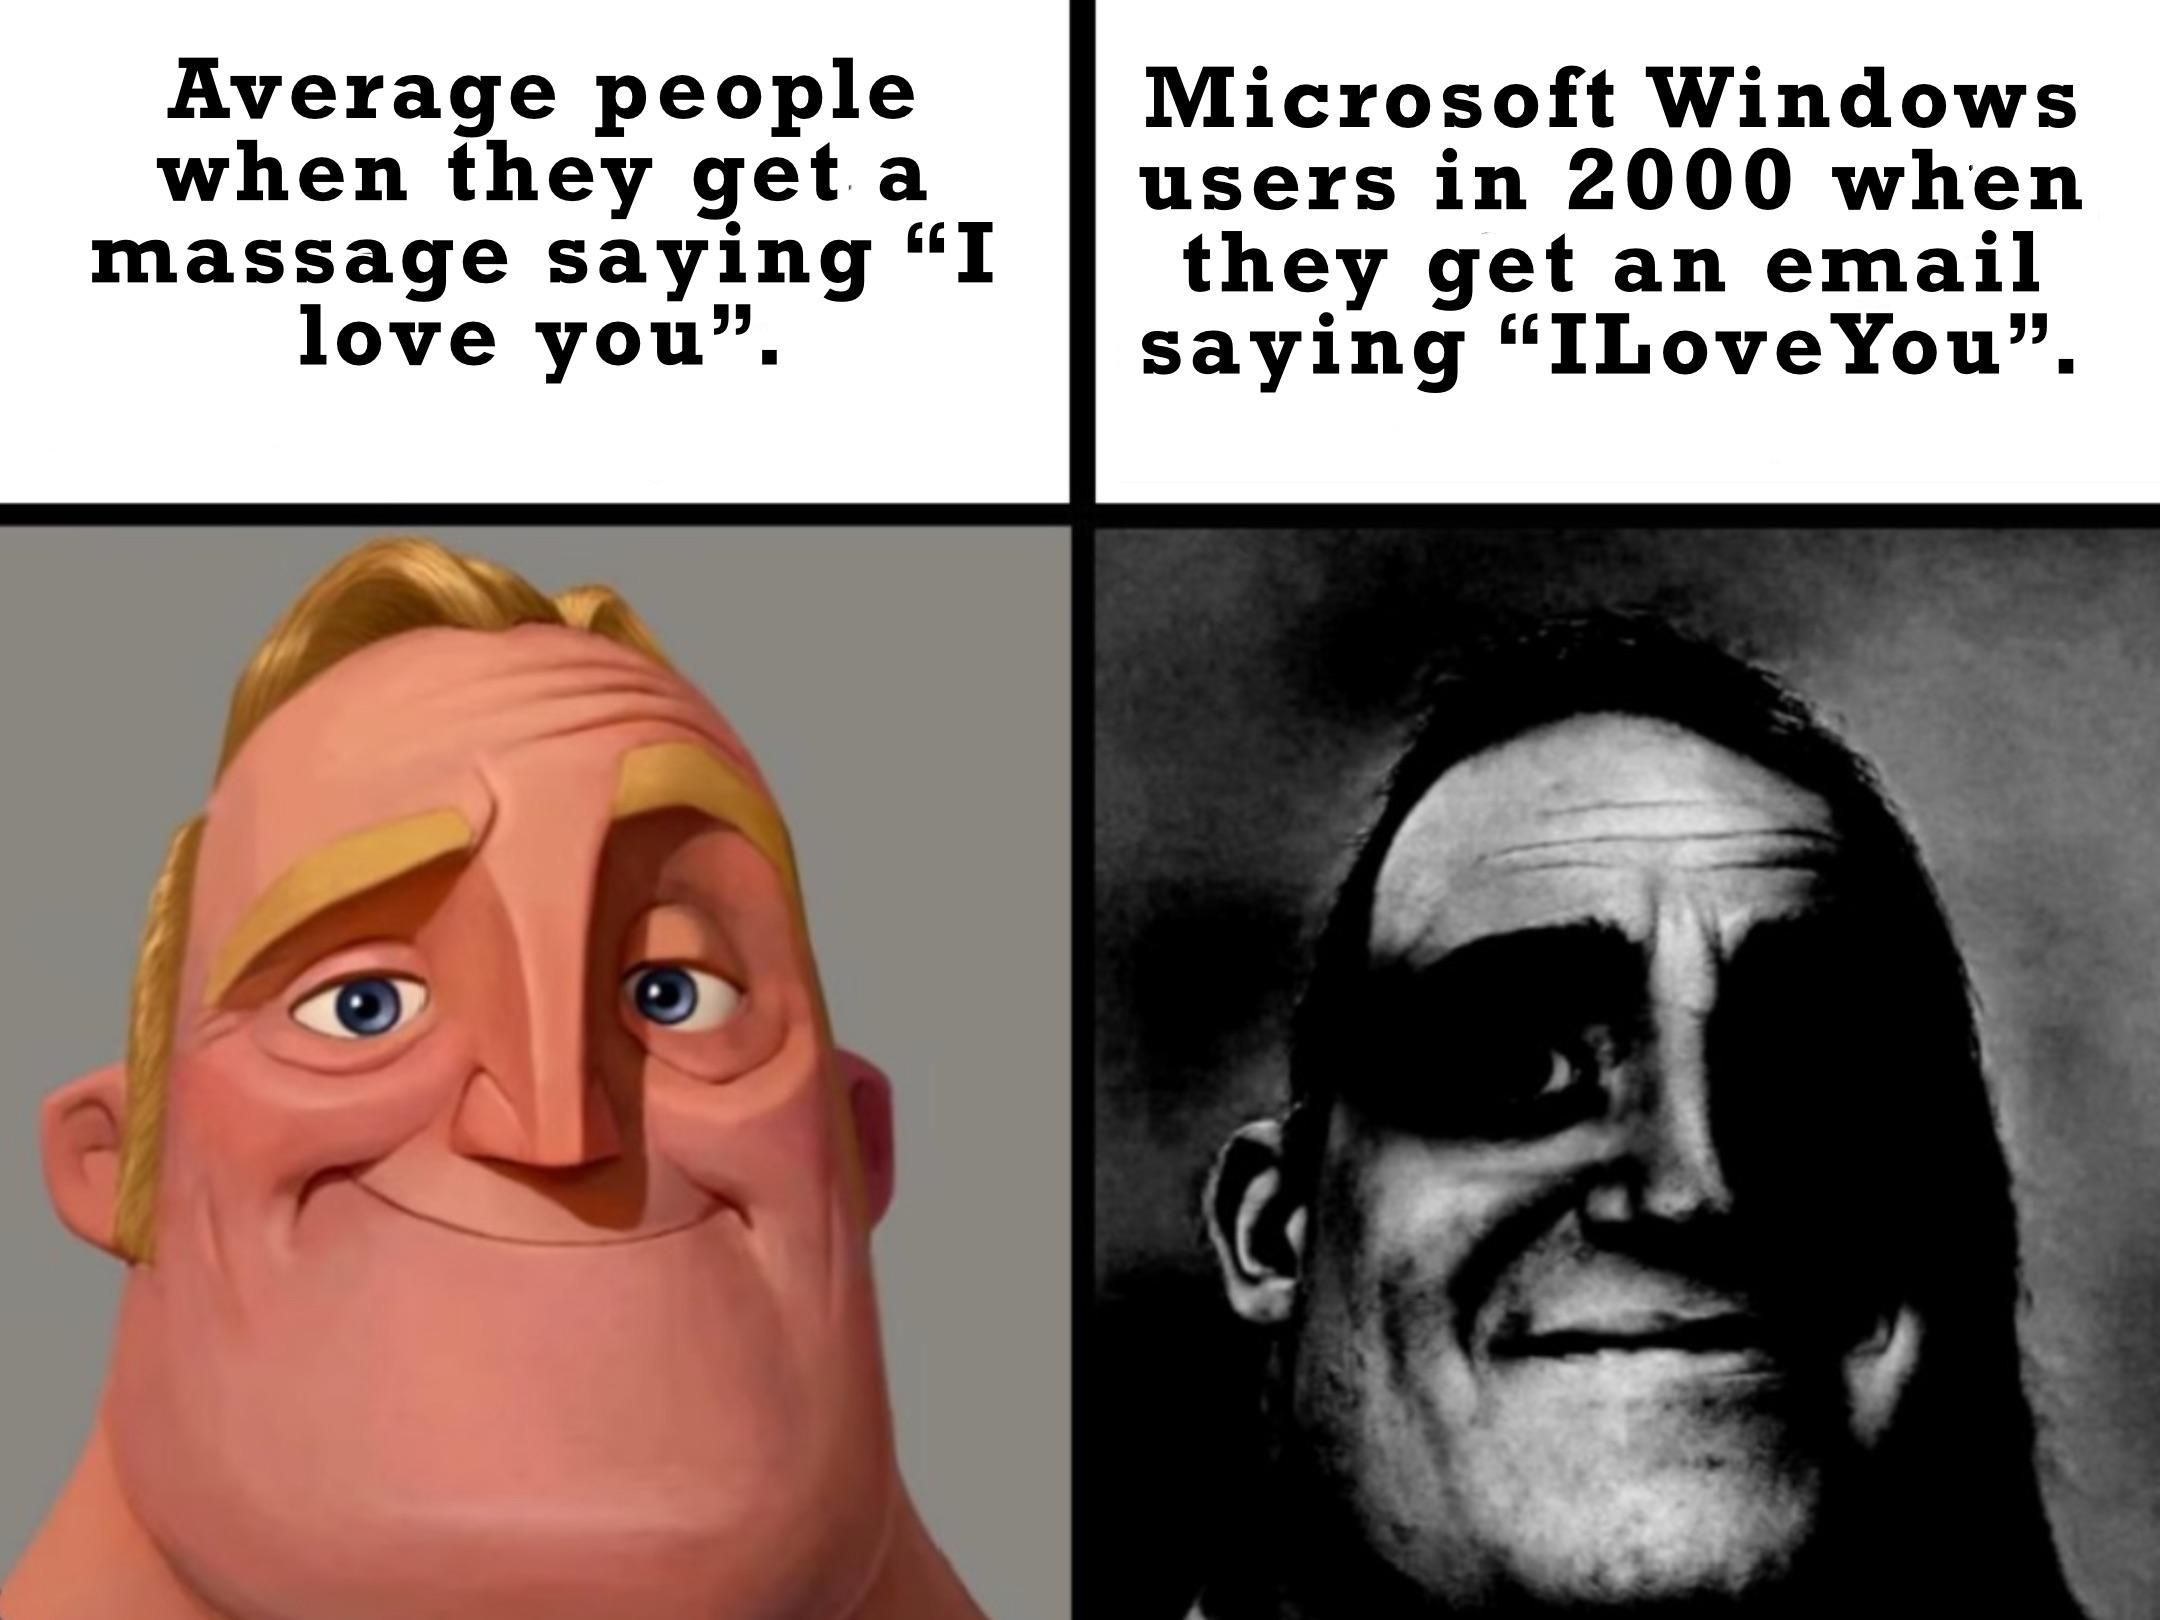 Probably the worst computer virus to ever effect the world.